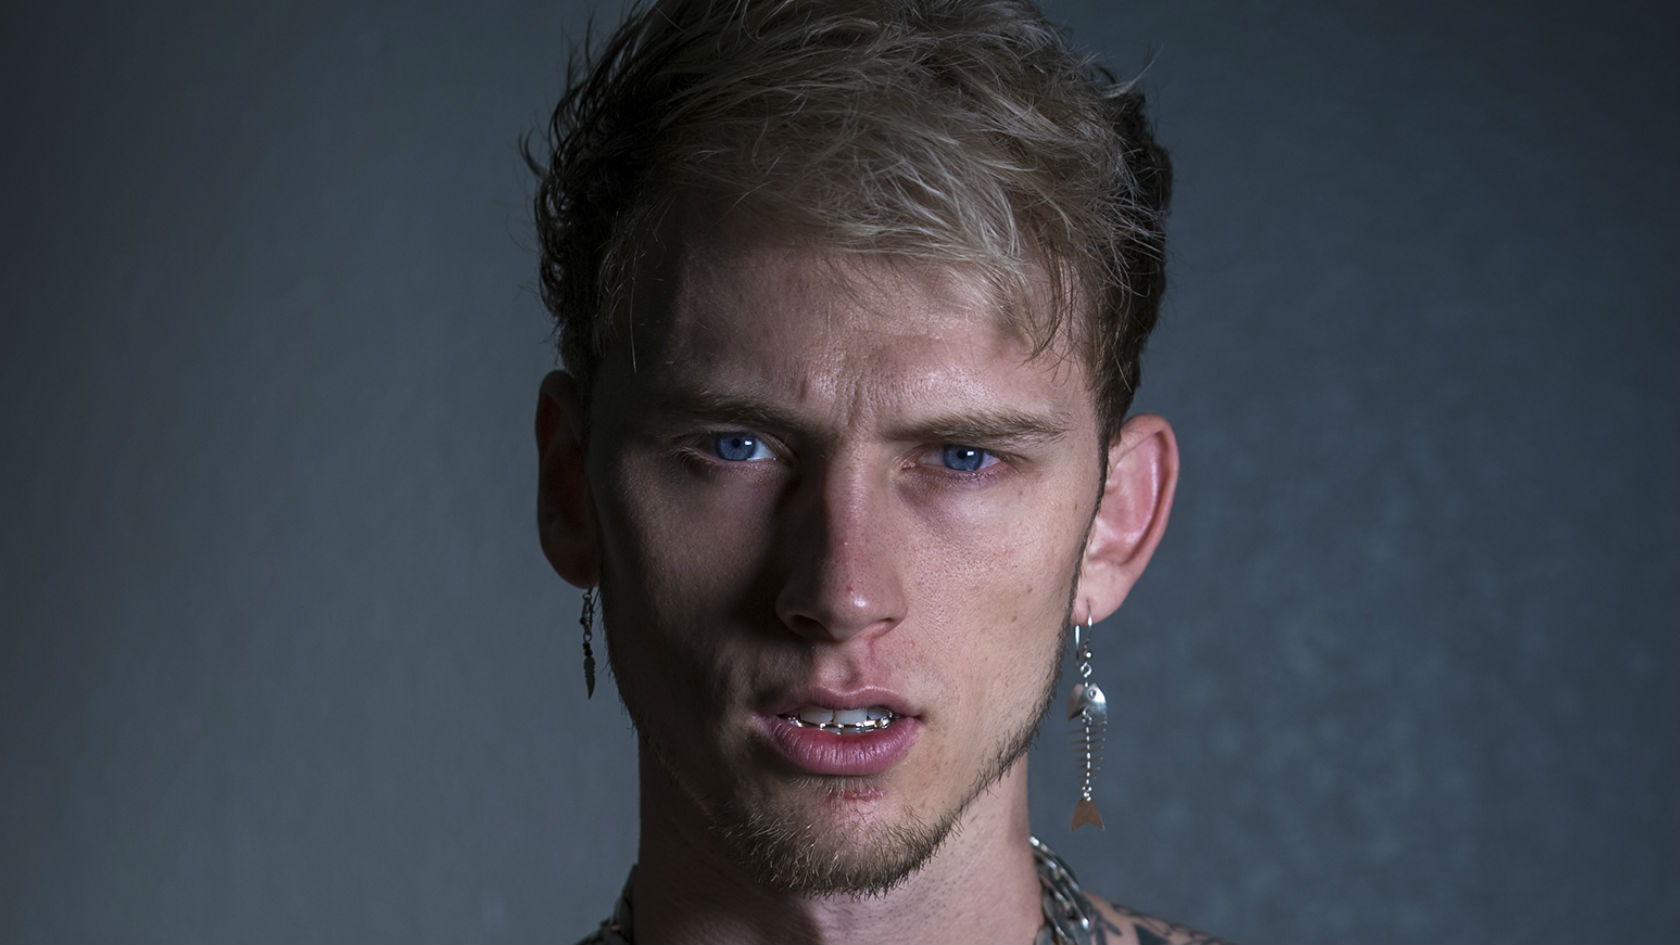 Machine Gun Kelly Announces The 27 Tour For May 2018